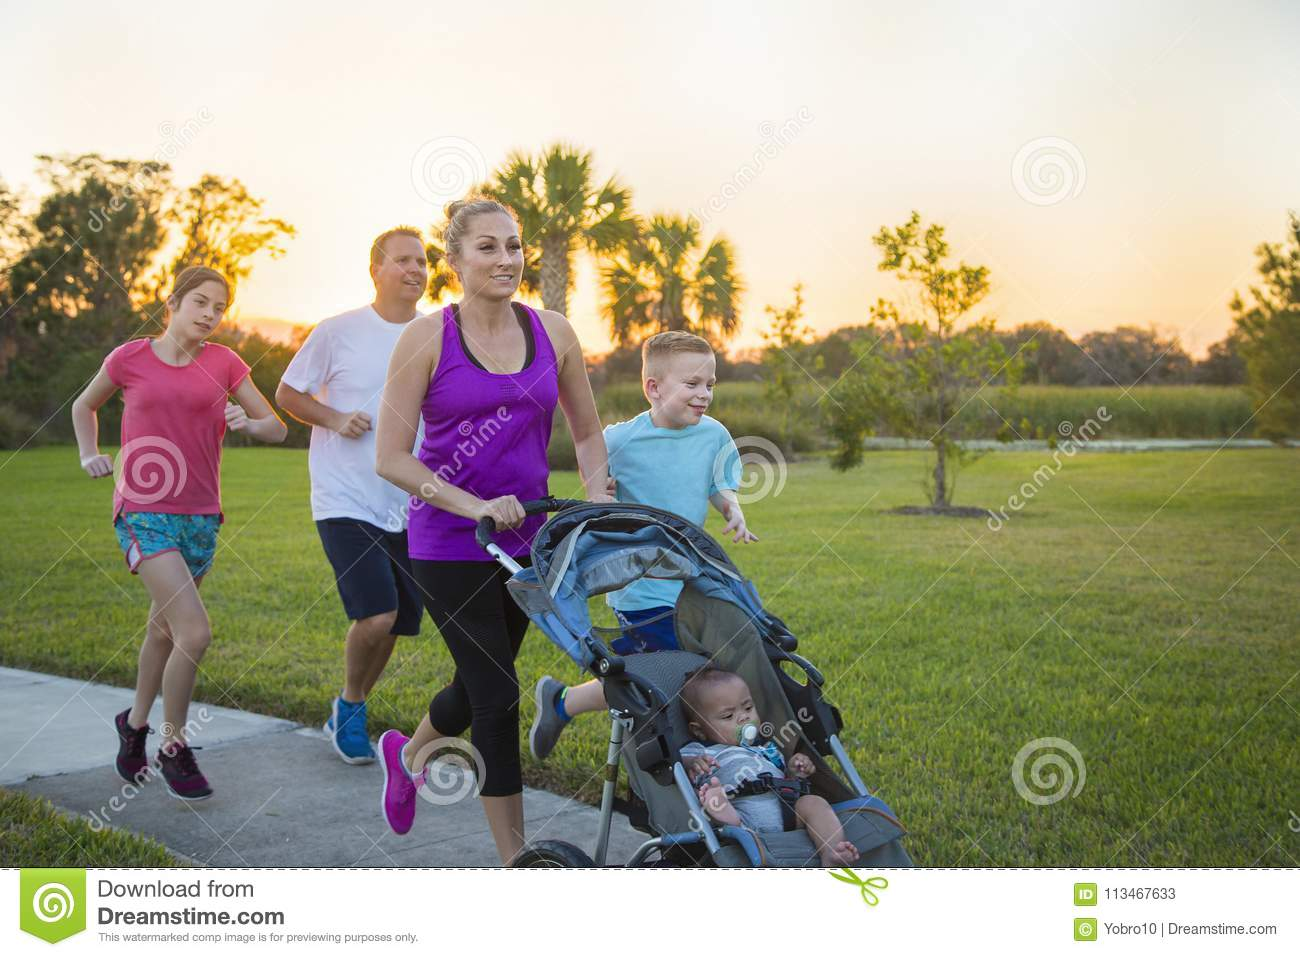 Family jogging and exercising outdoors together